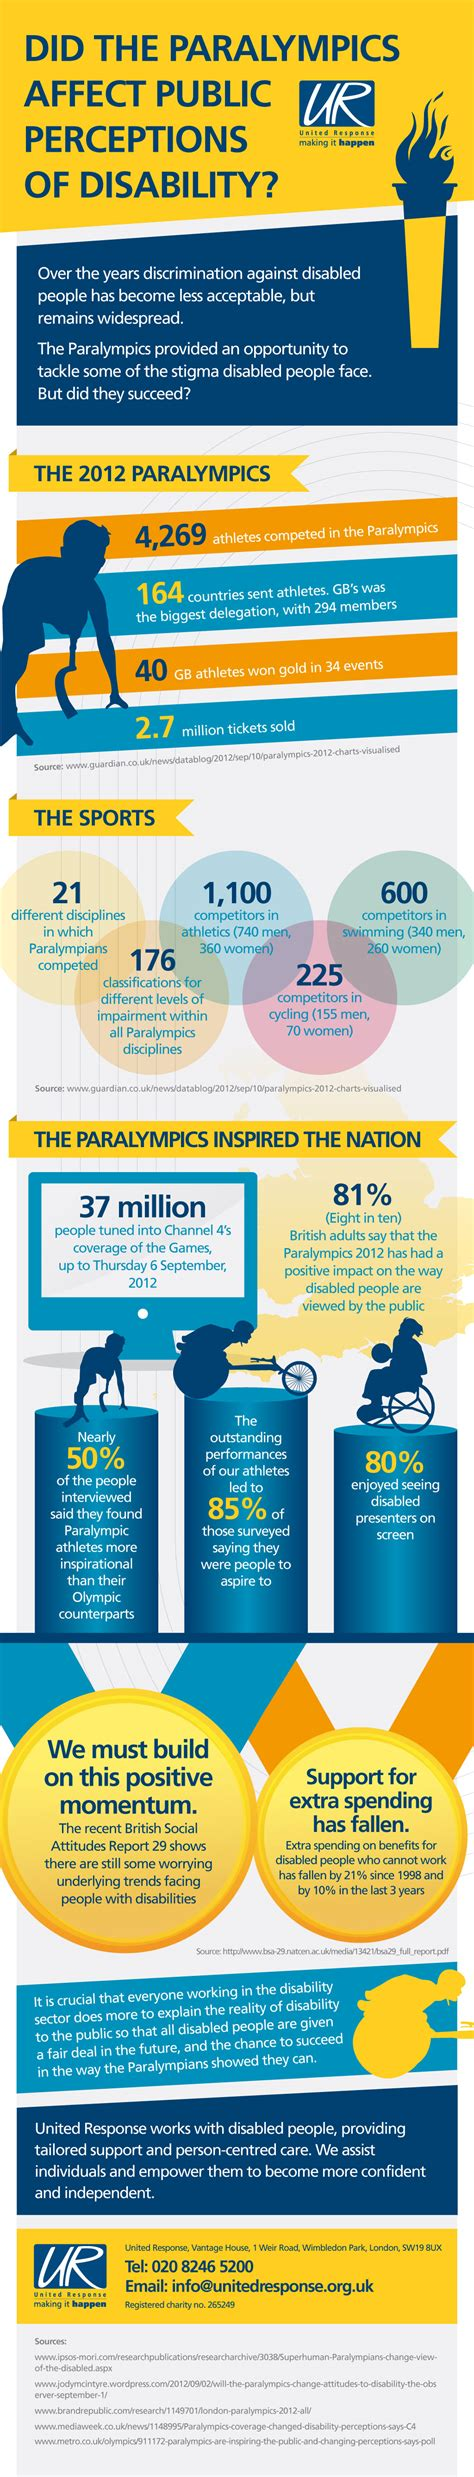 London 2012 Paralympics changed view of disabled people in ...